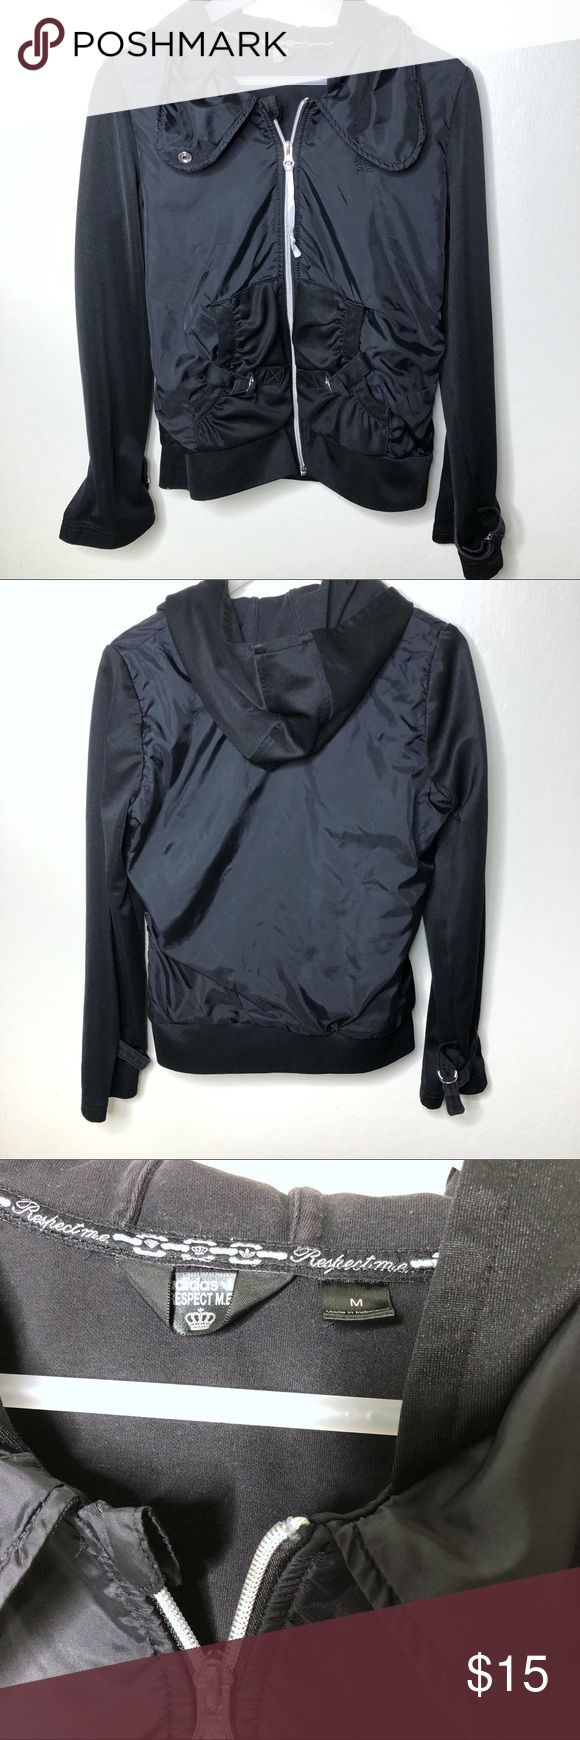 Adidas Respect Me Jacket Adidas Respect Me Missy Elliott Edition Black Jacket Zipped And Buttoned All The Way Or Open With Jackets Clothes Design Black Jacket